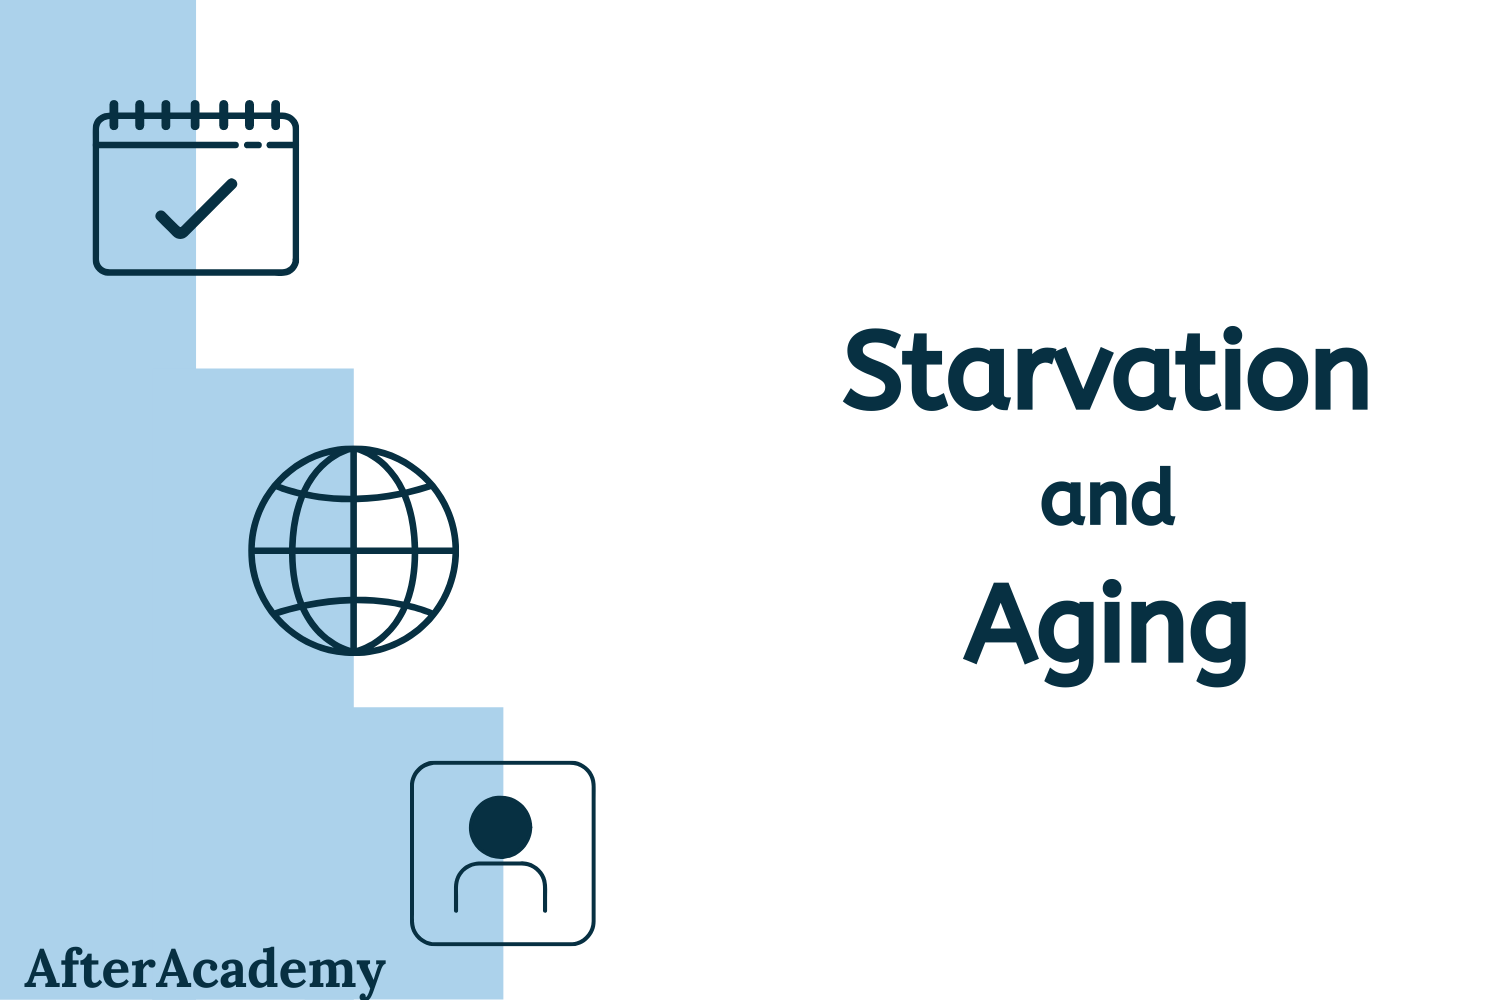 What is Starvation and Aging?